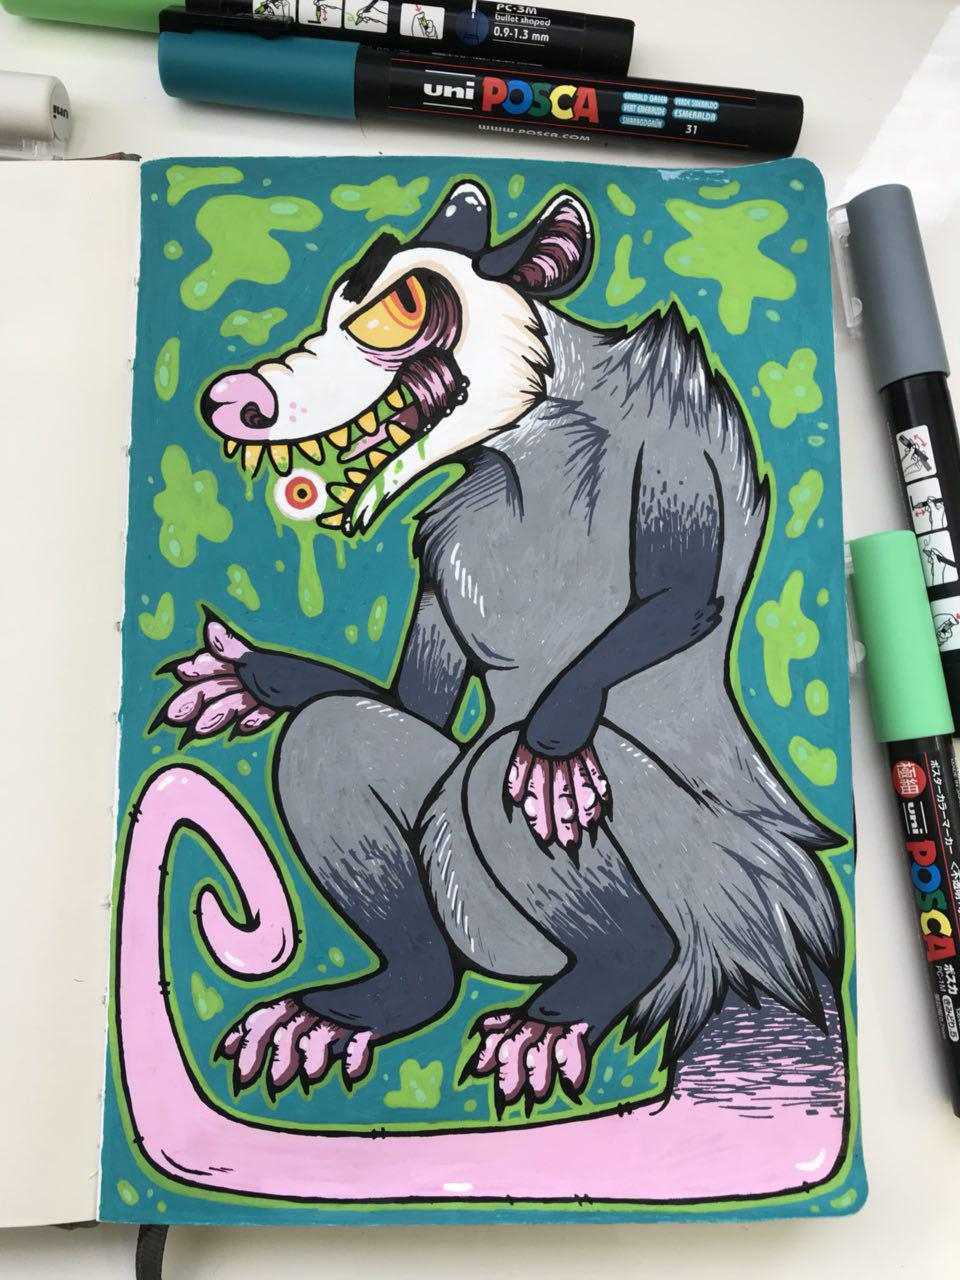 New Sketchbook - New and snarly Tales!